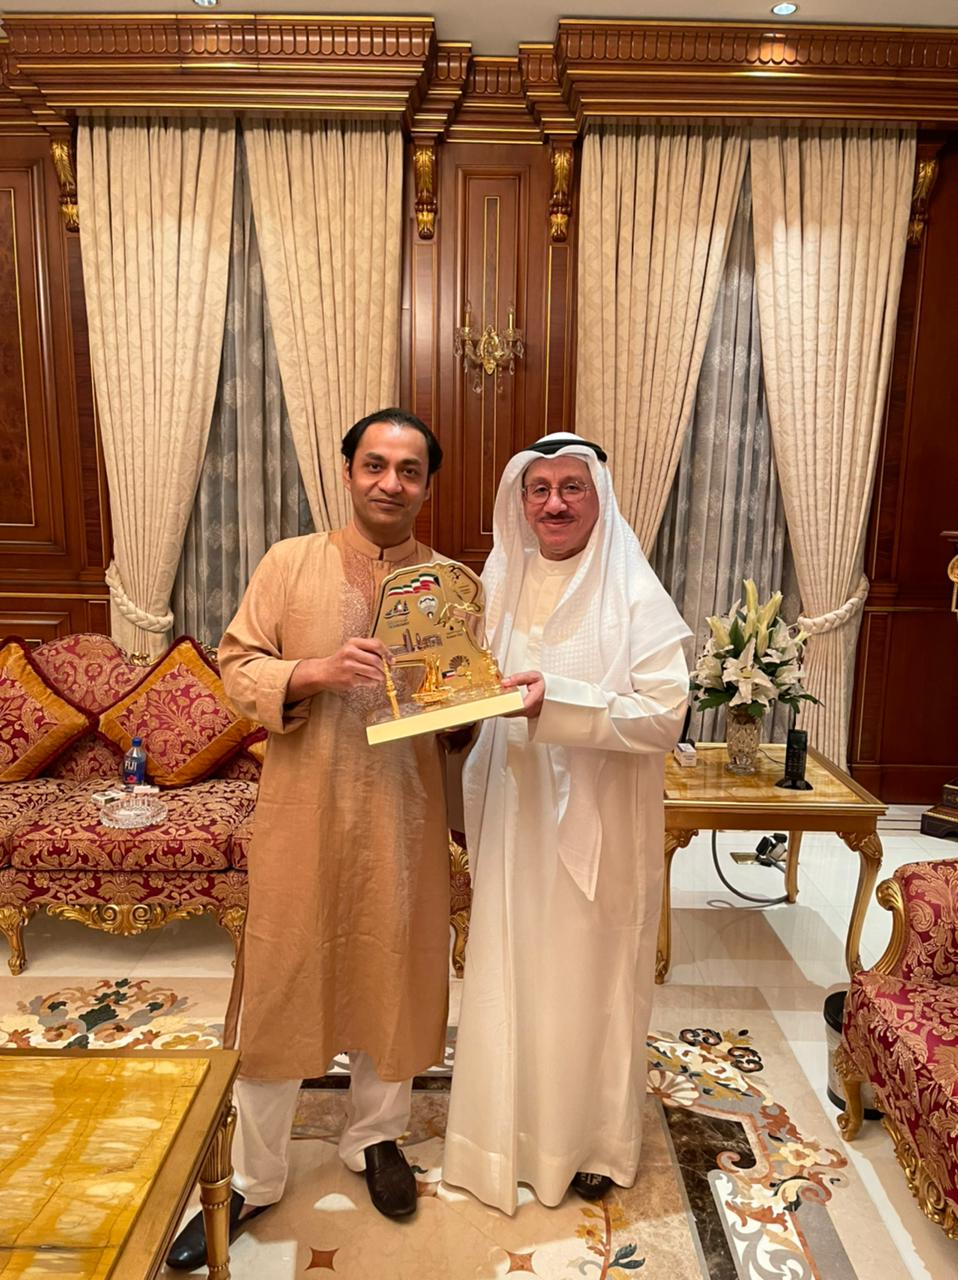 Dinner hosted at my residence on 7th March 2021 for His Excellency Mr. Adel Mohammed A H Hayat, Ambassador of the State of Kuwait in Bangladesh.